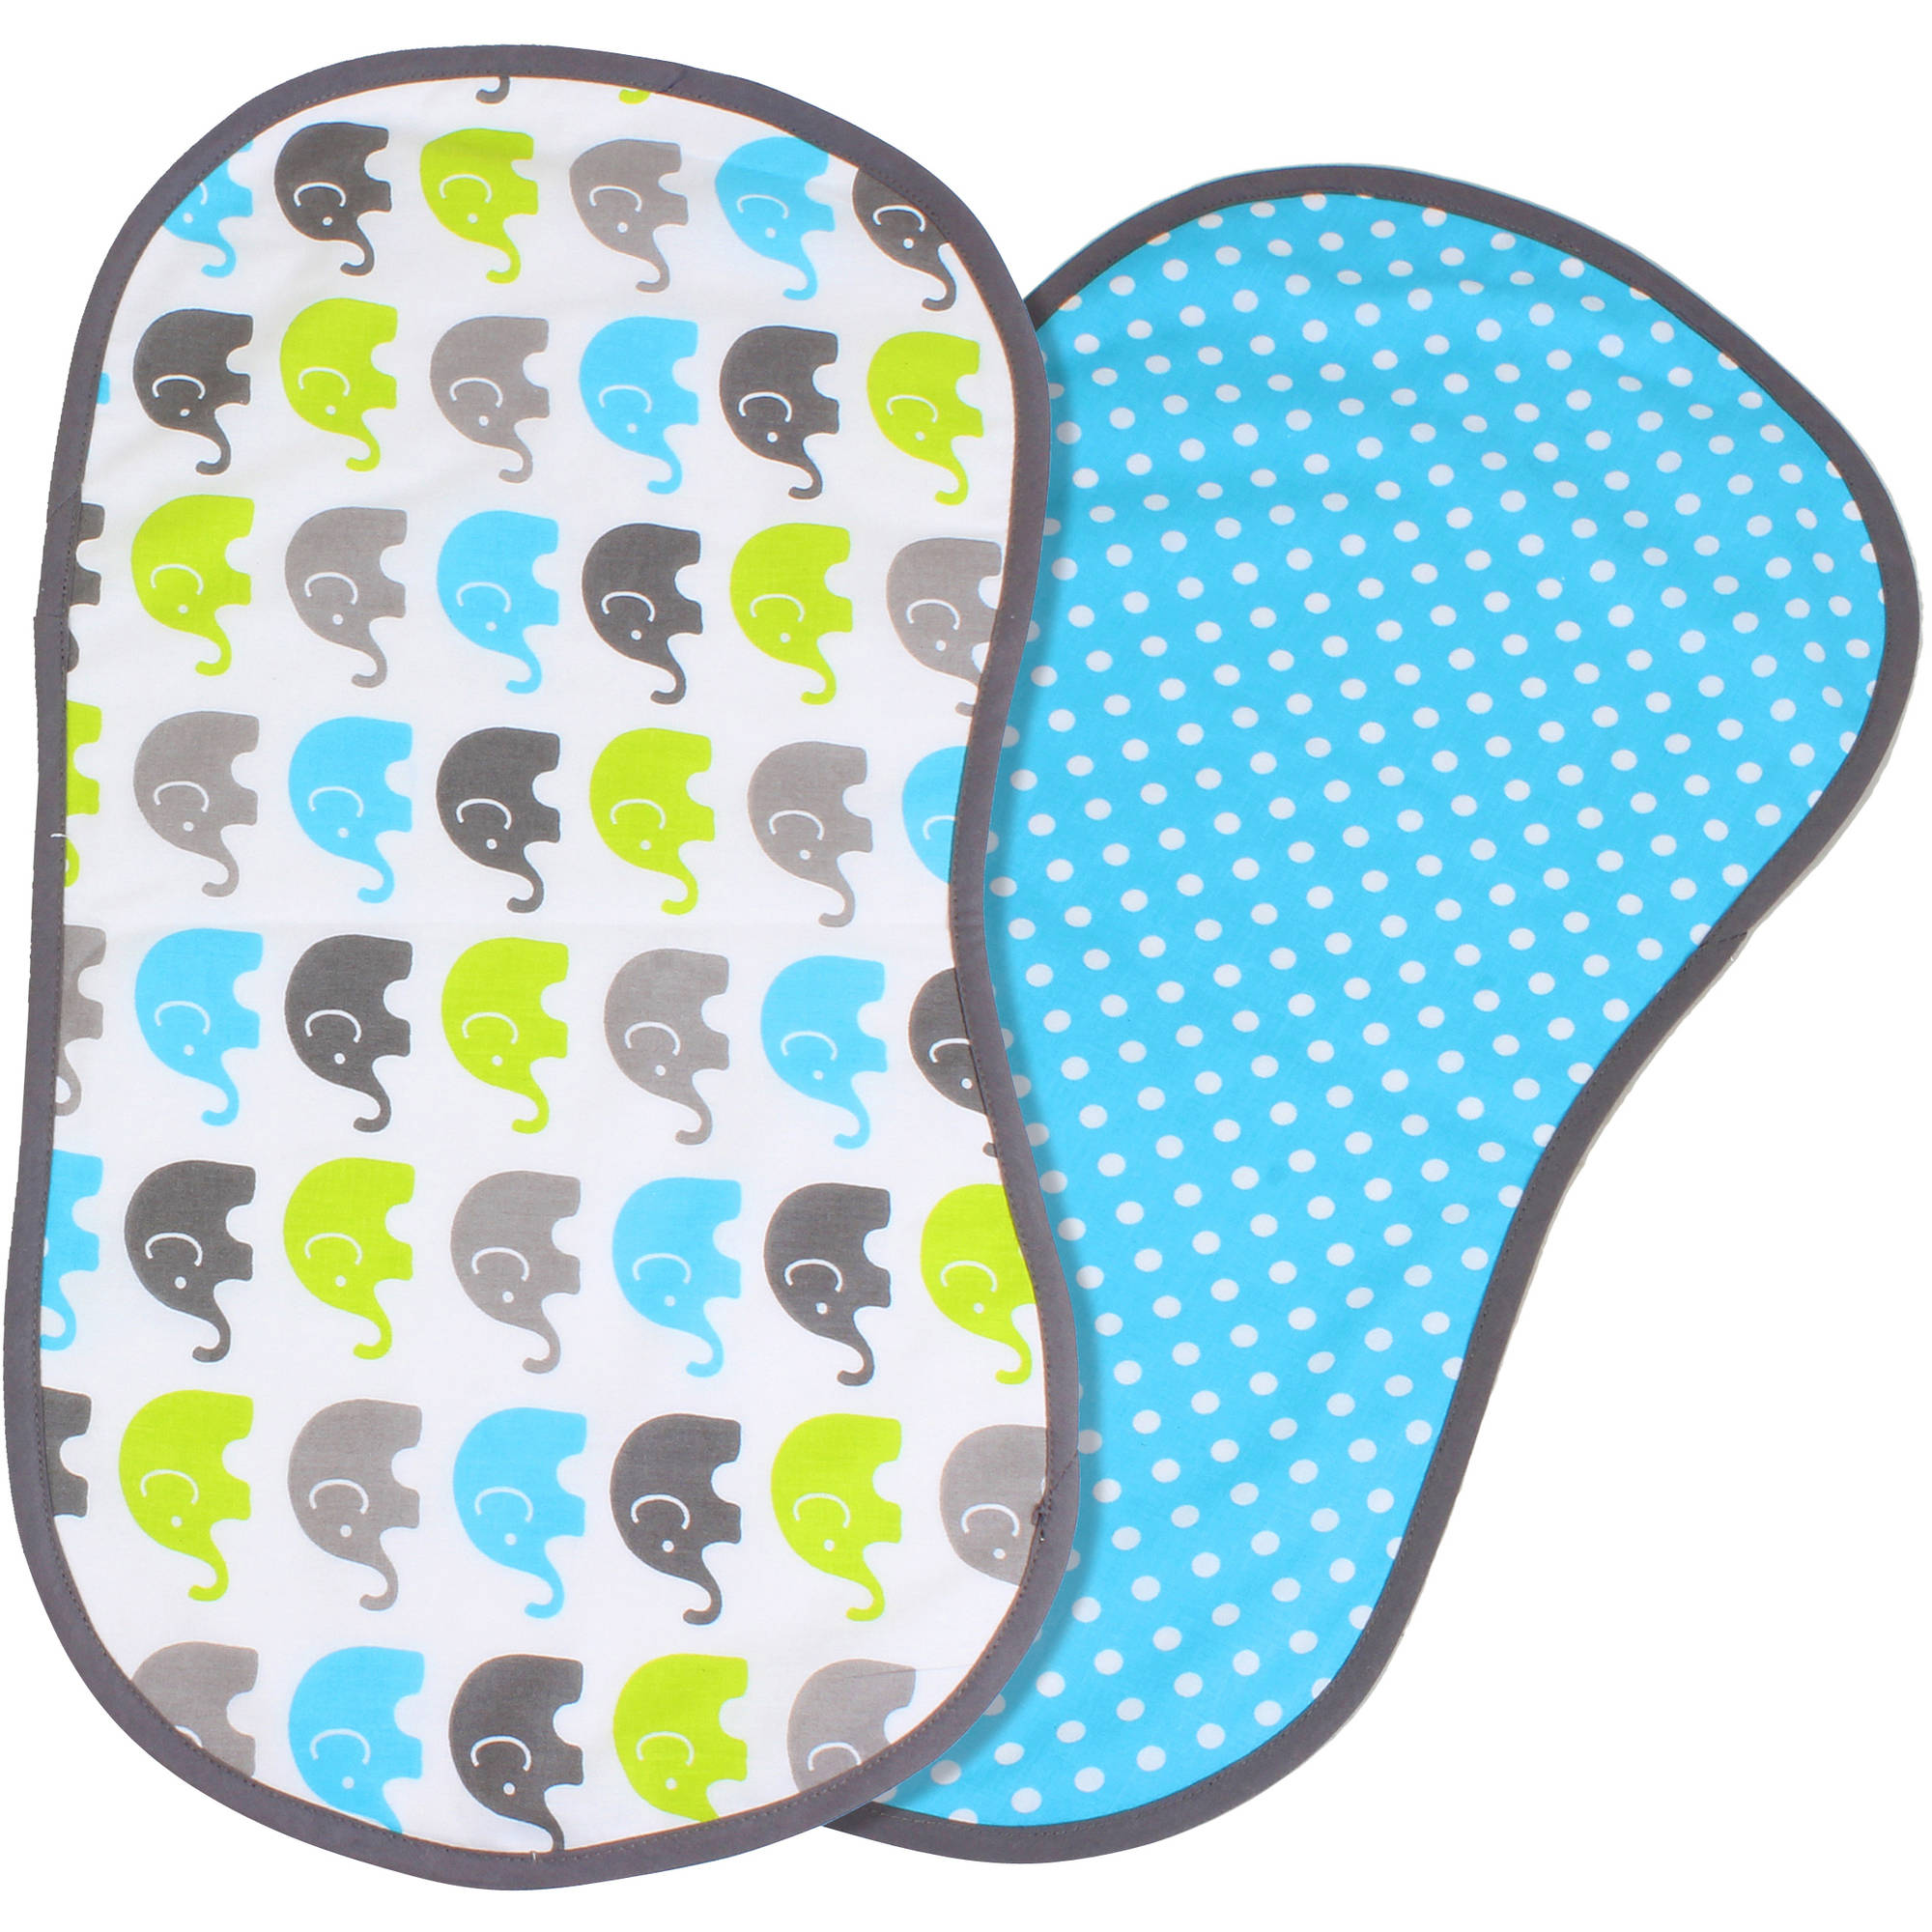 Bacati Burpies Burp Cloths, Aqua/Lime/Grey, 2 count